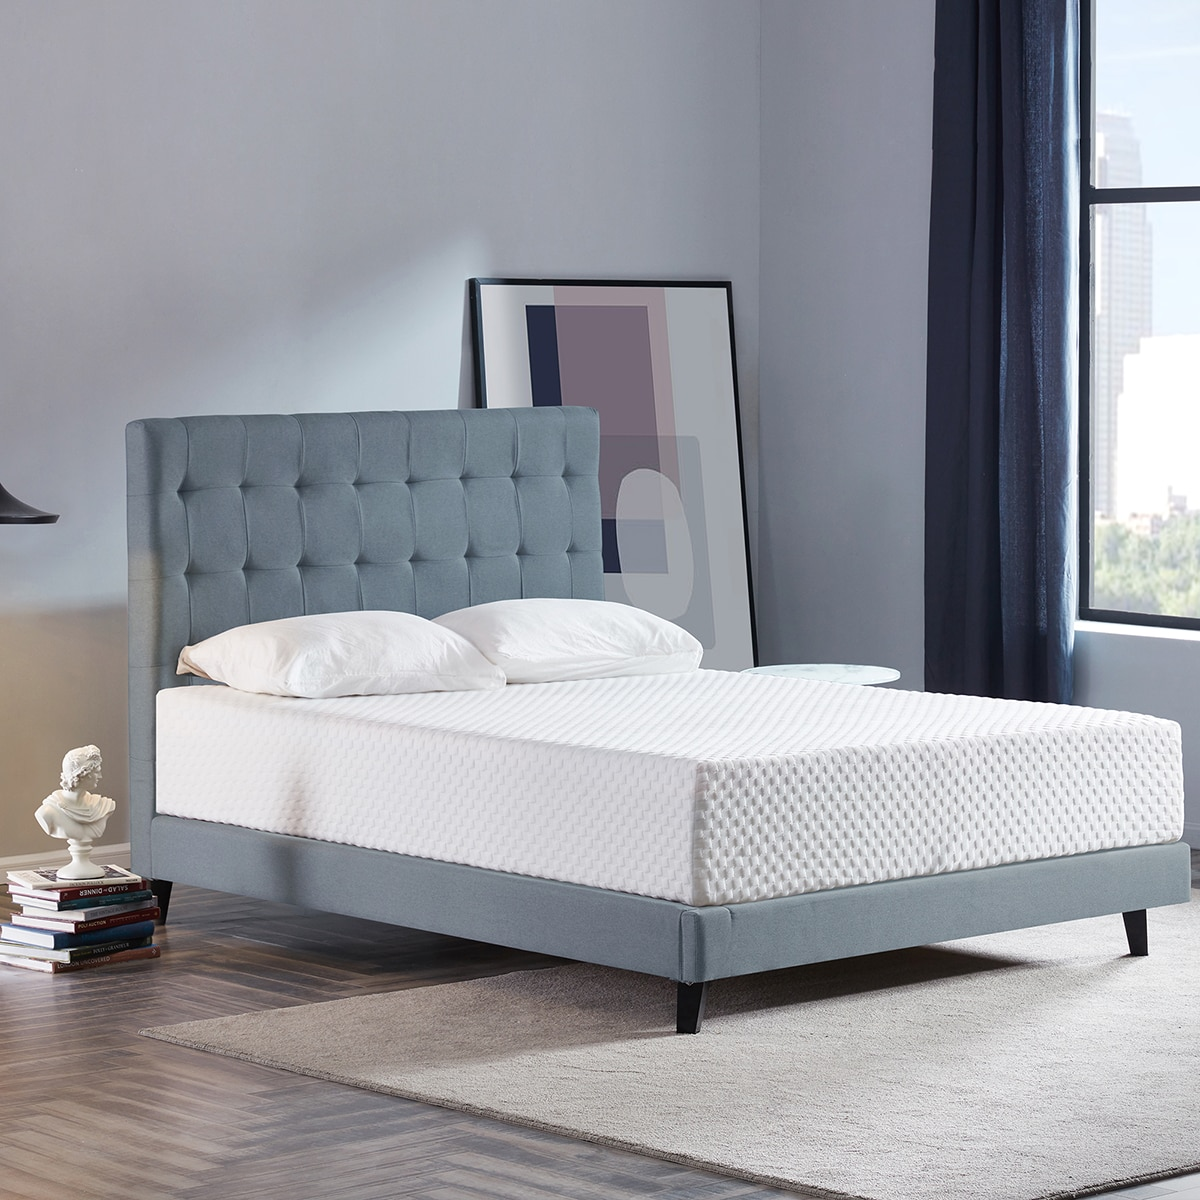 High Density 3 Layers 12 Inch Soft Breathable Memory Foam Mattress